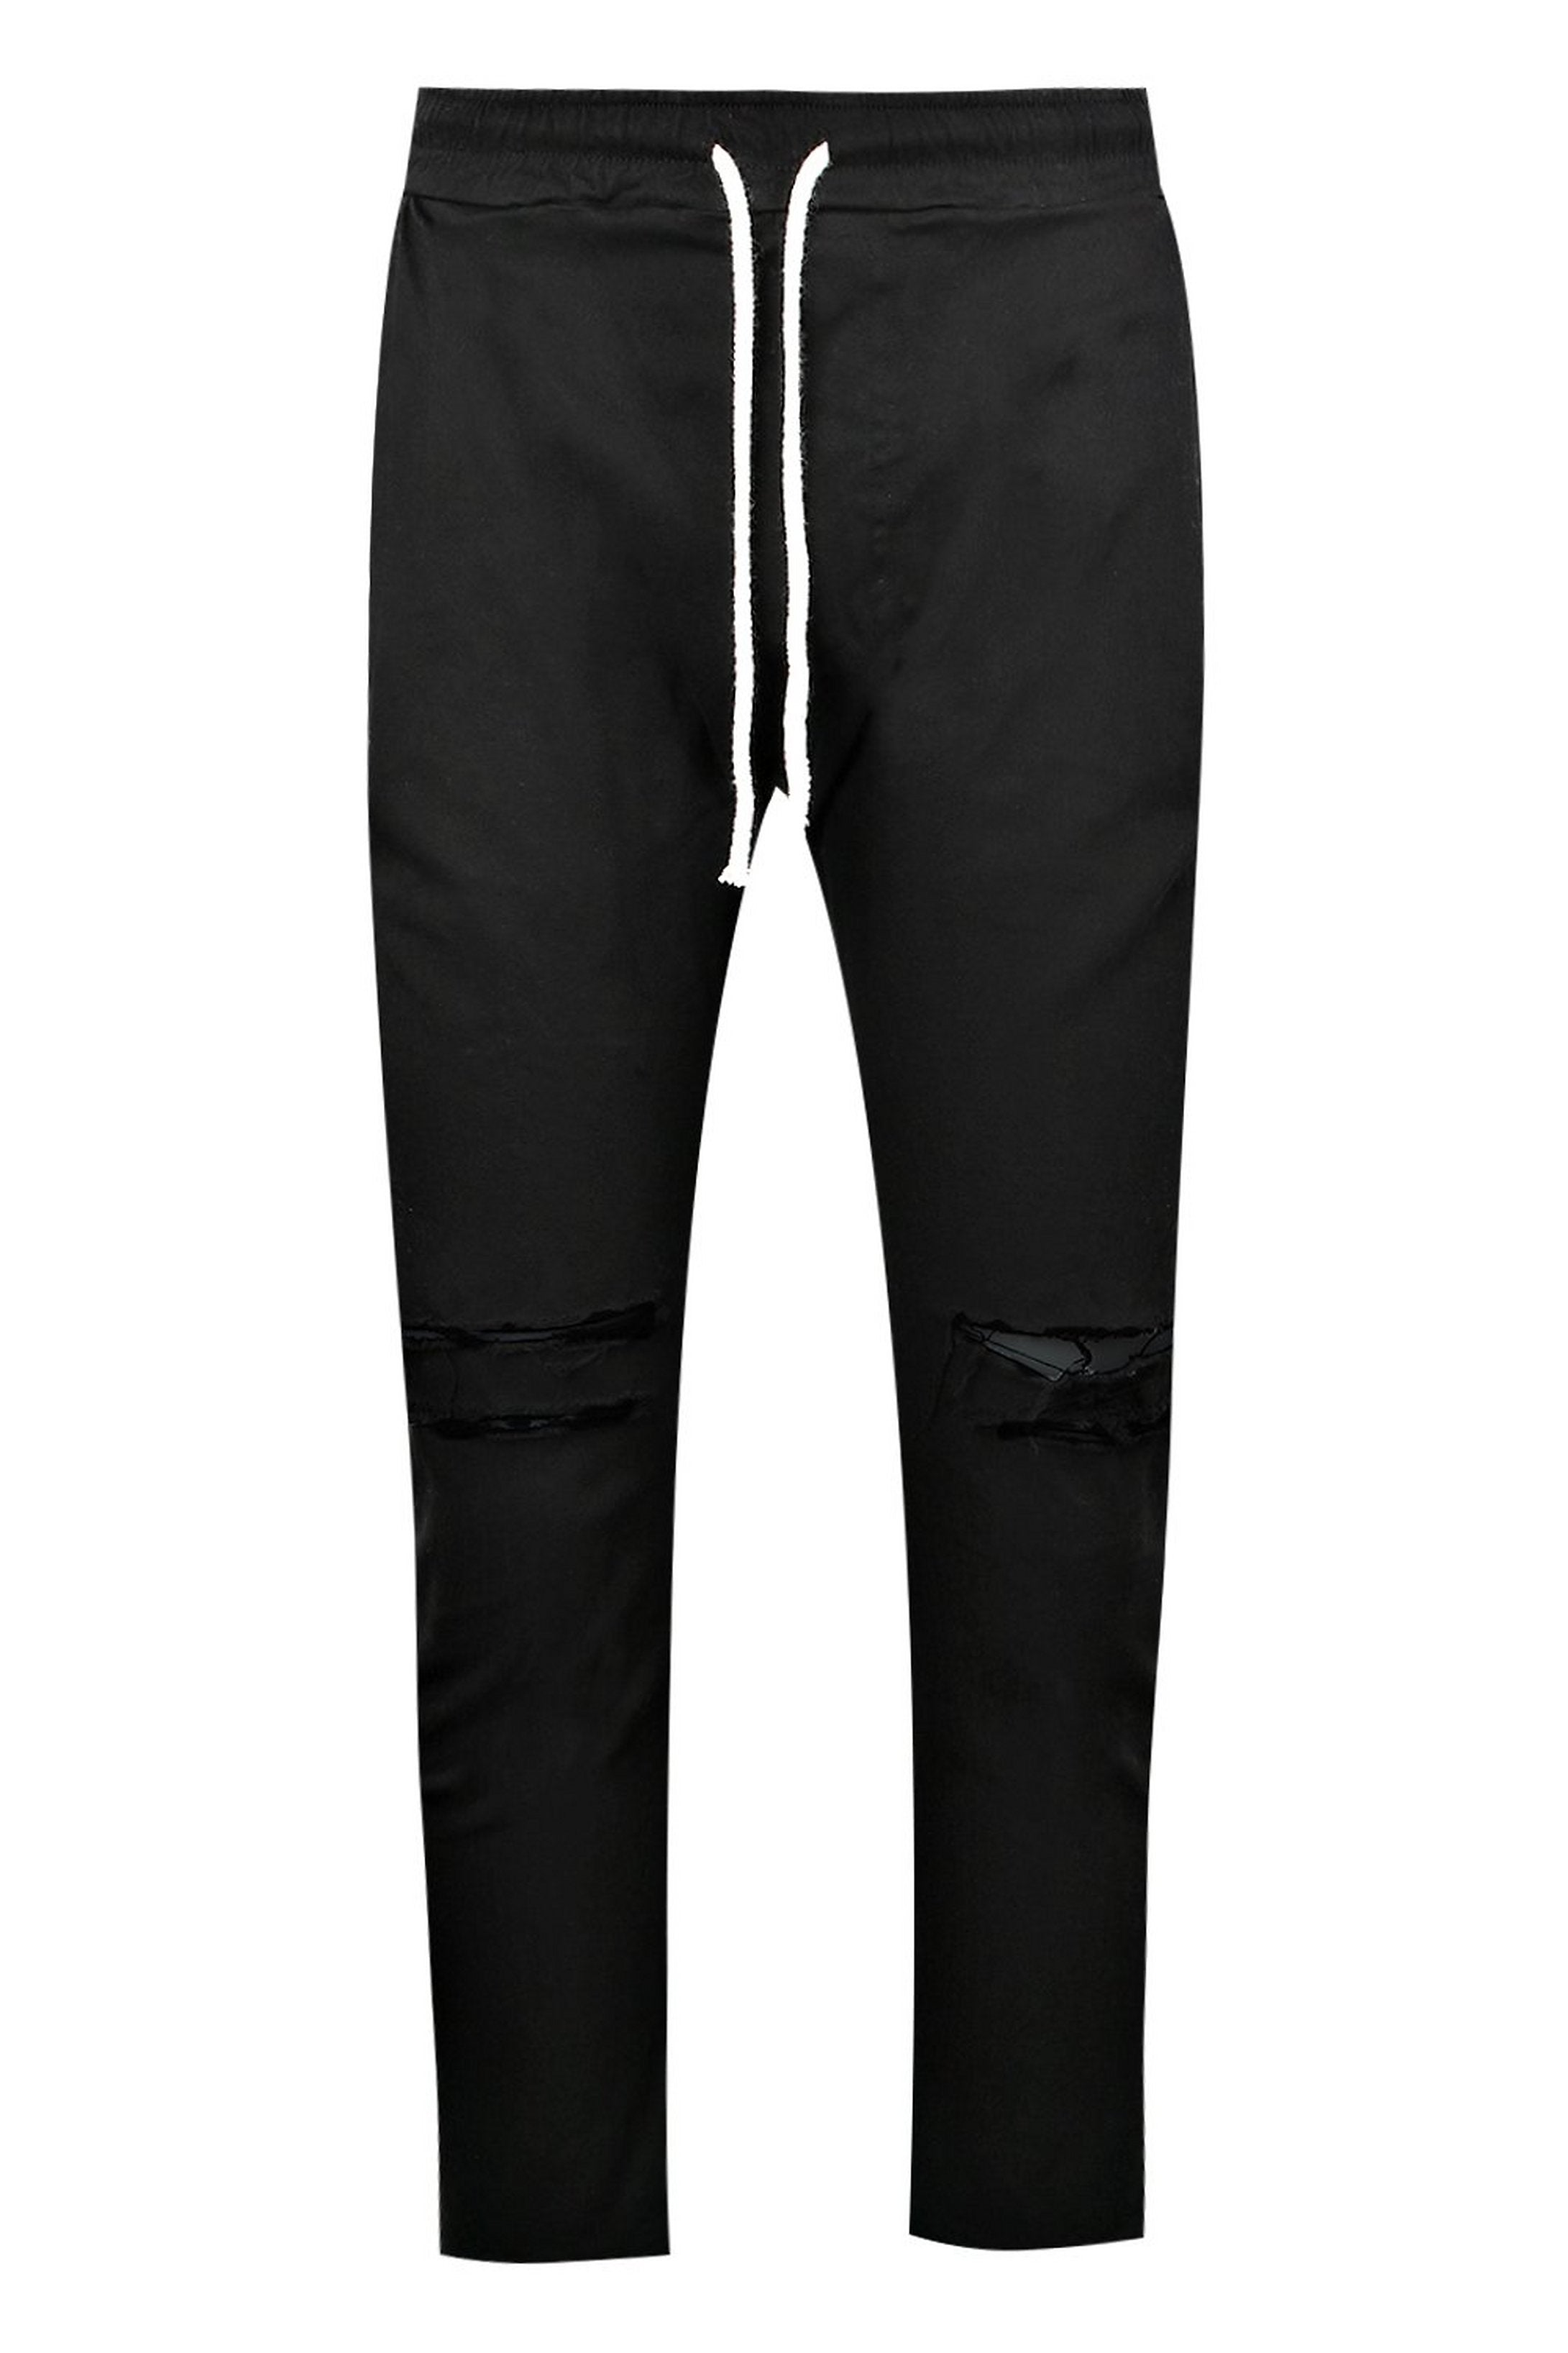 The Cotton (Ripped) Chino Pant - Up to Size 44!